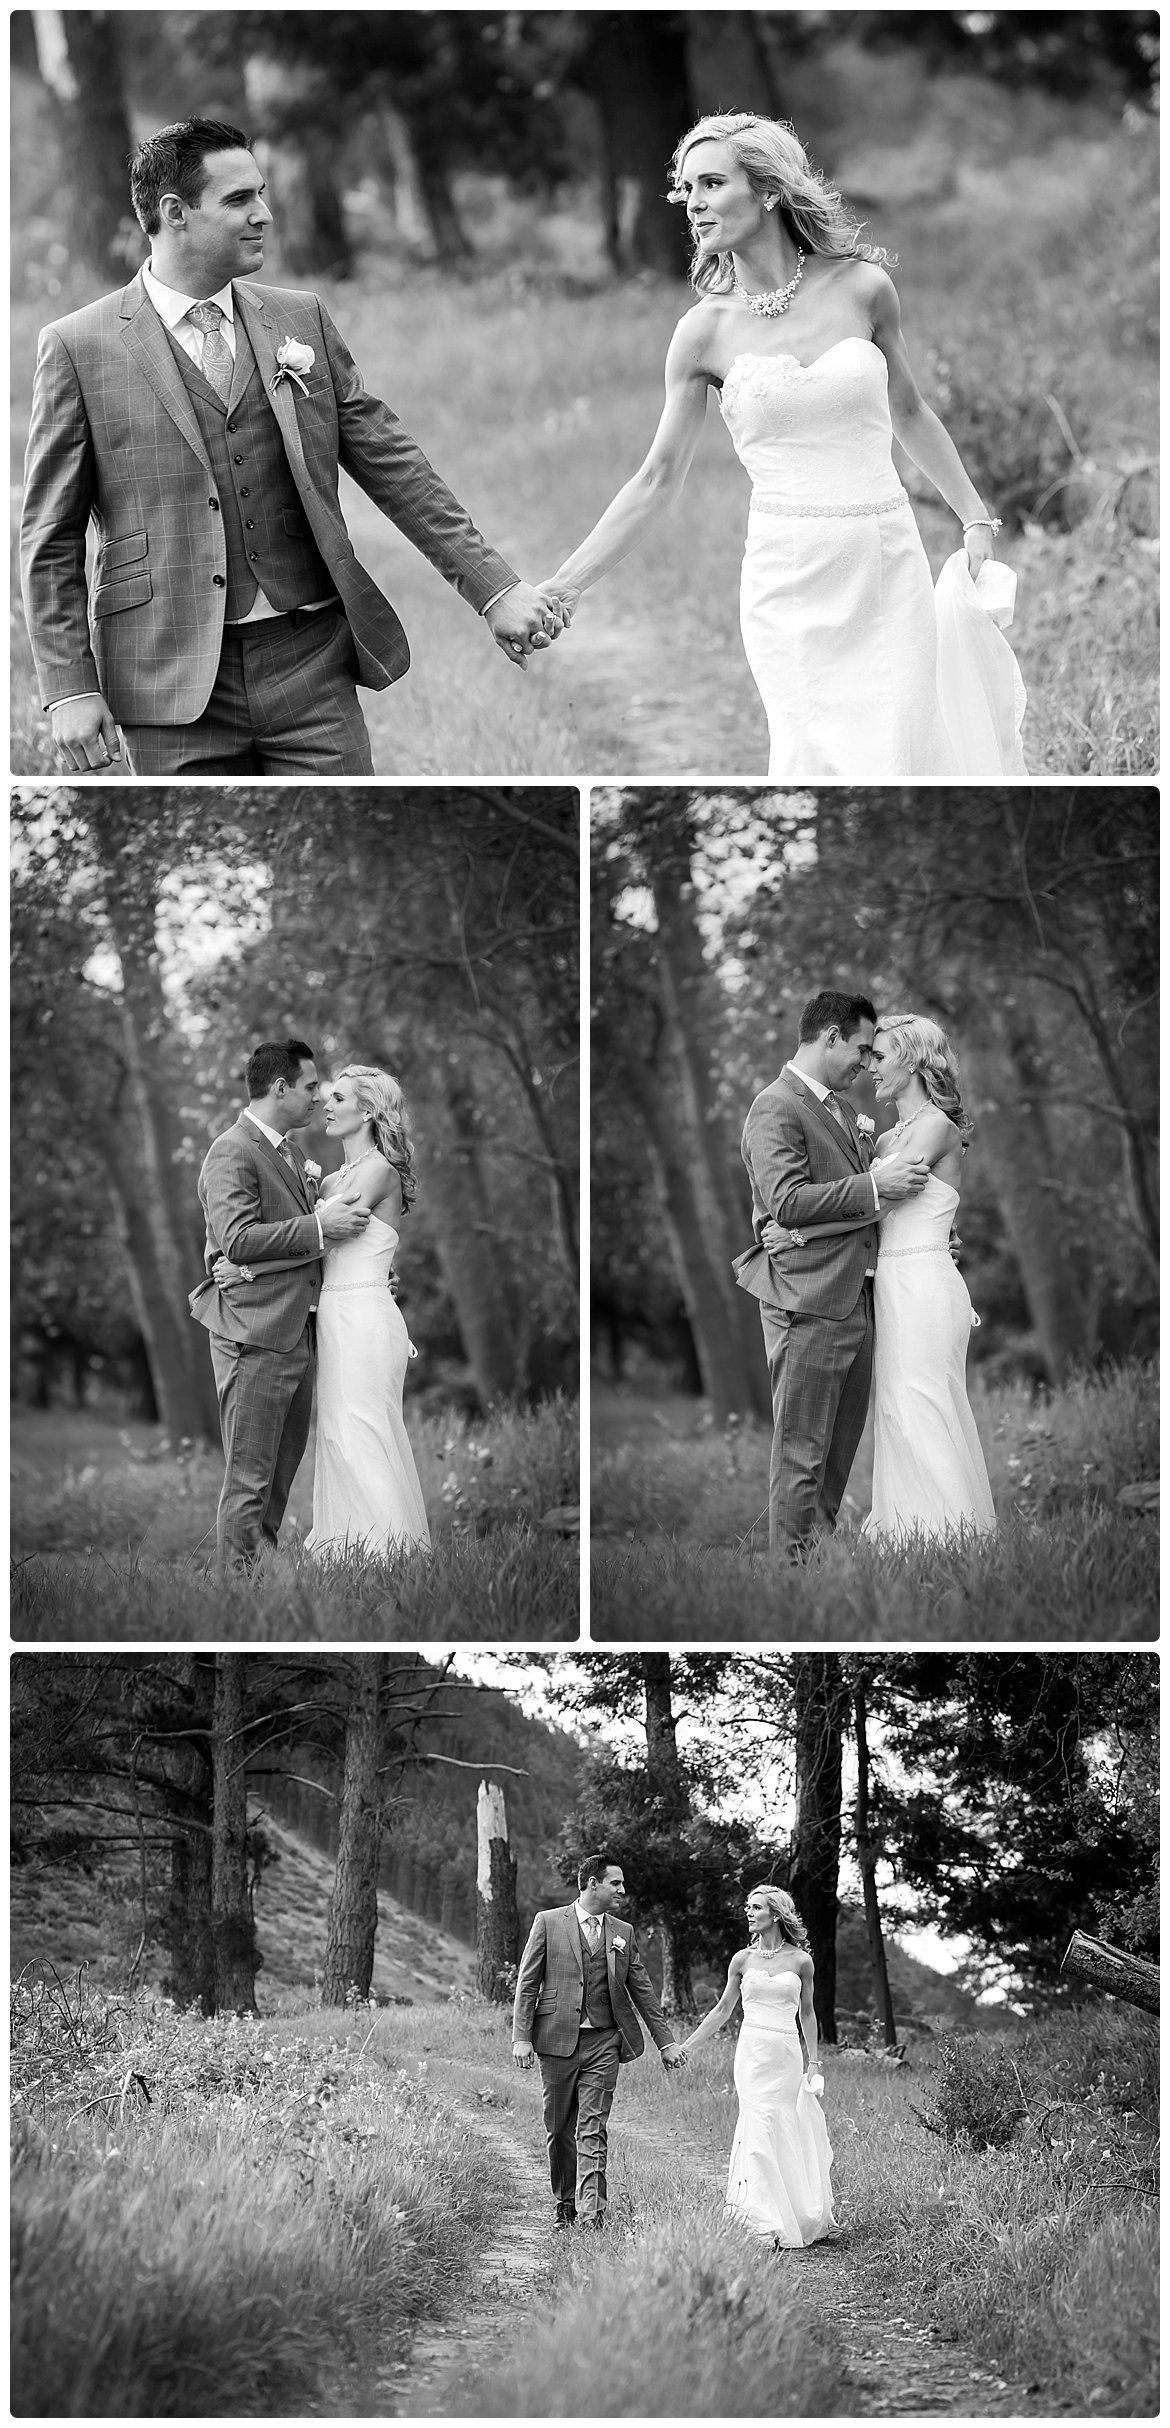 rickety-bridge-weddings-joanne-markland-photography-WS-031